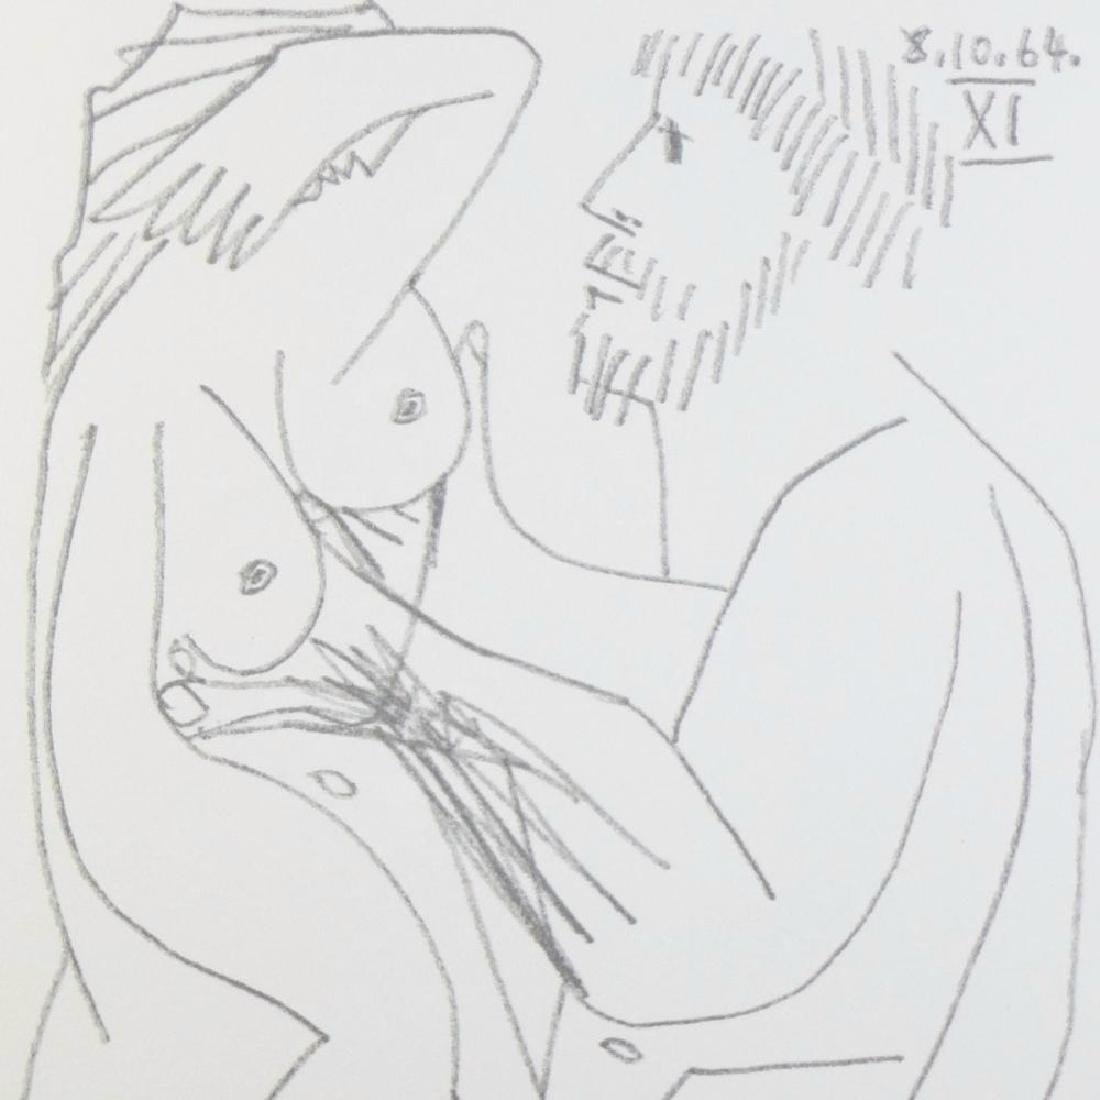 Rare Picasso C.1964 Erotic Limited Dealer Liquidation - 4